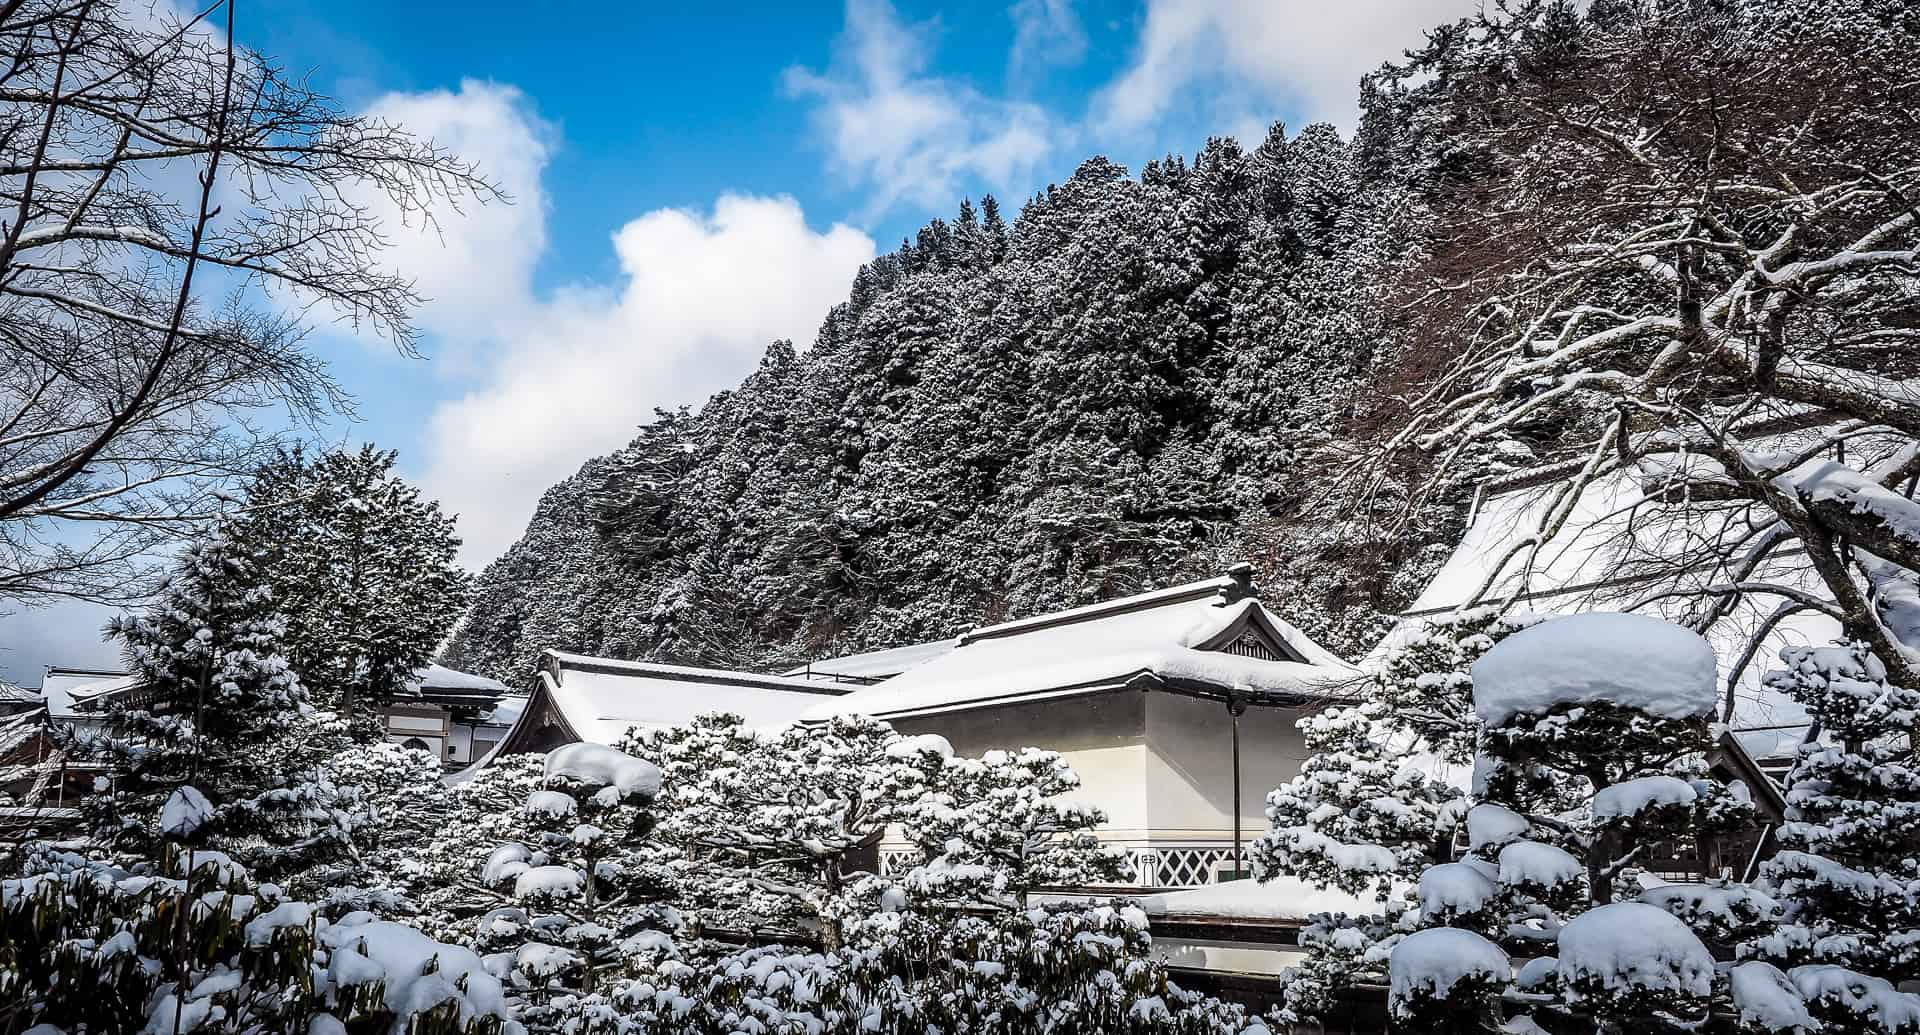 Eko In Koyasan: An Unforgettable Temple Stay in Koyasan in Winter